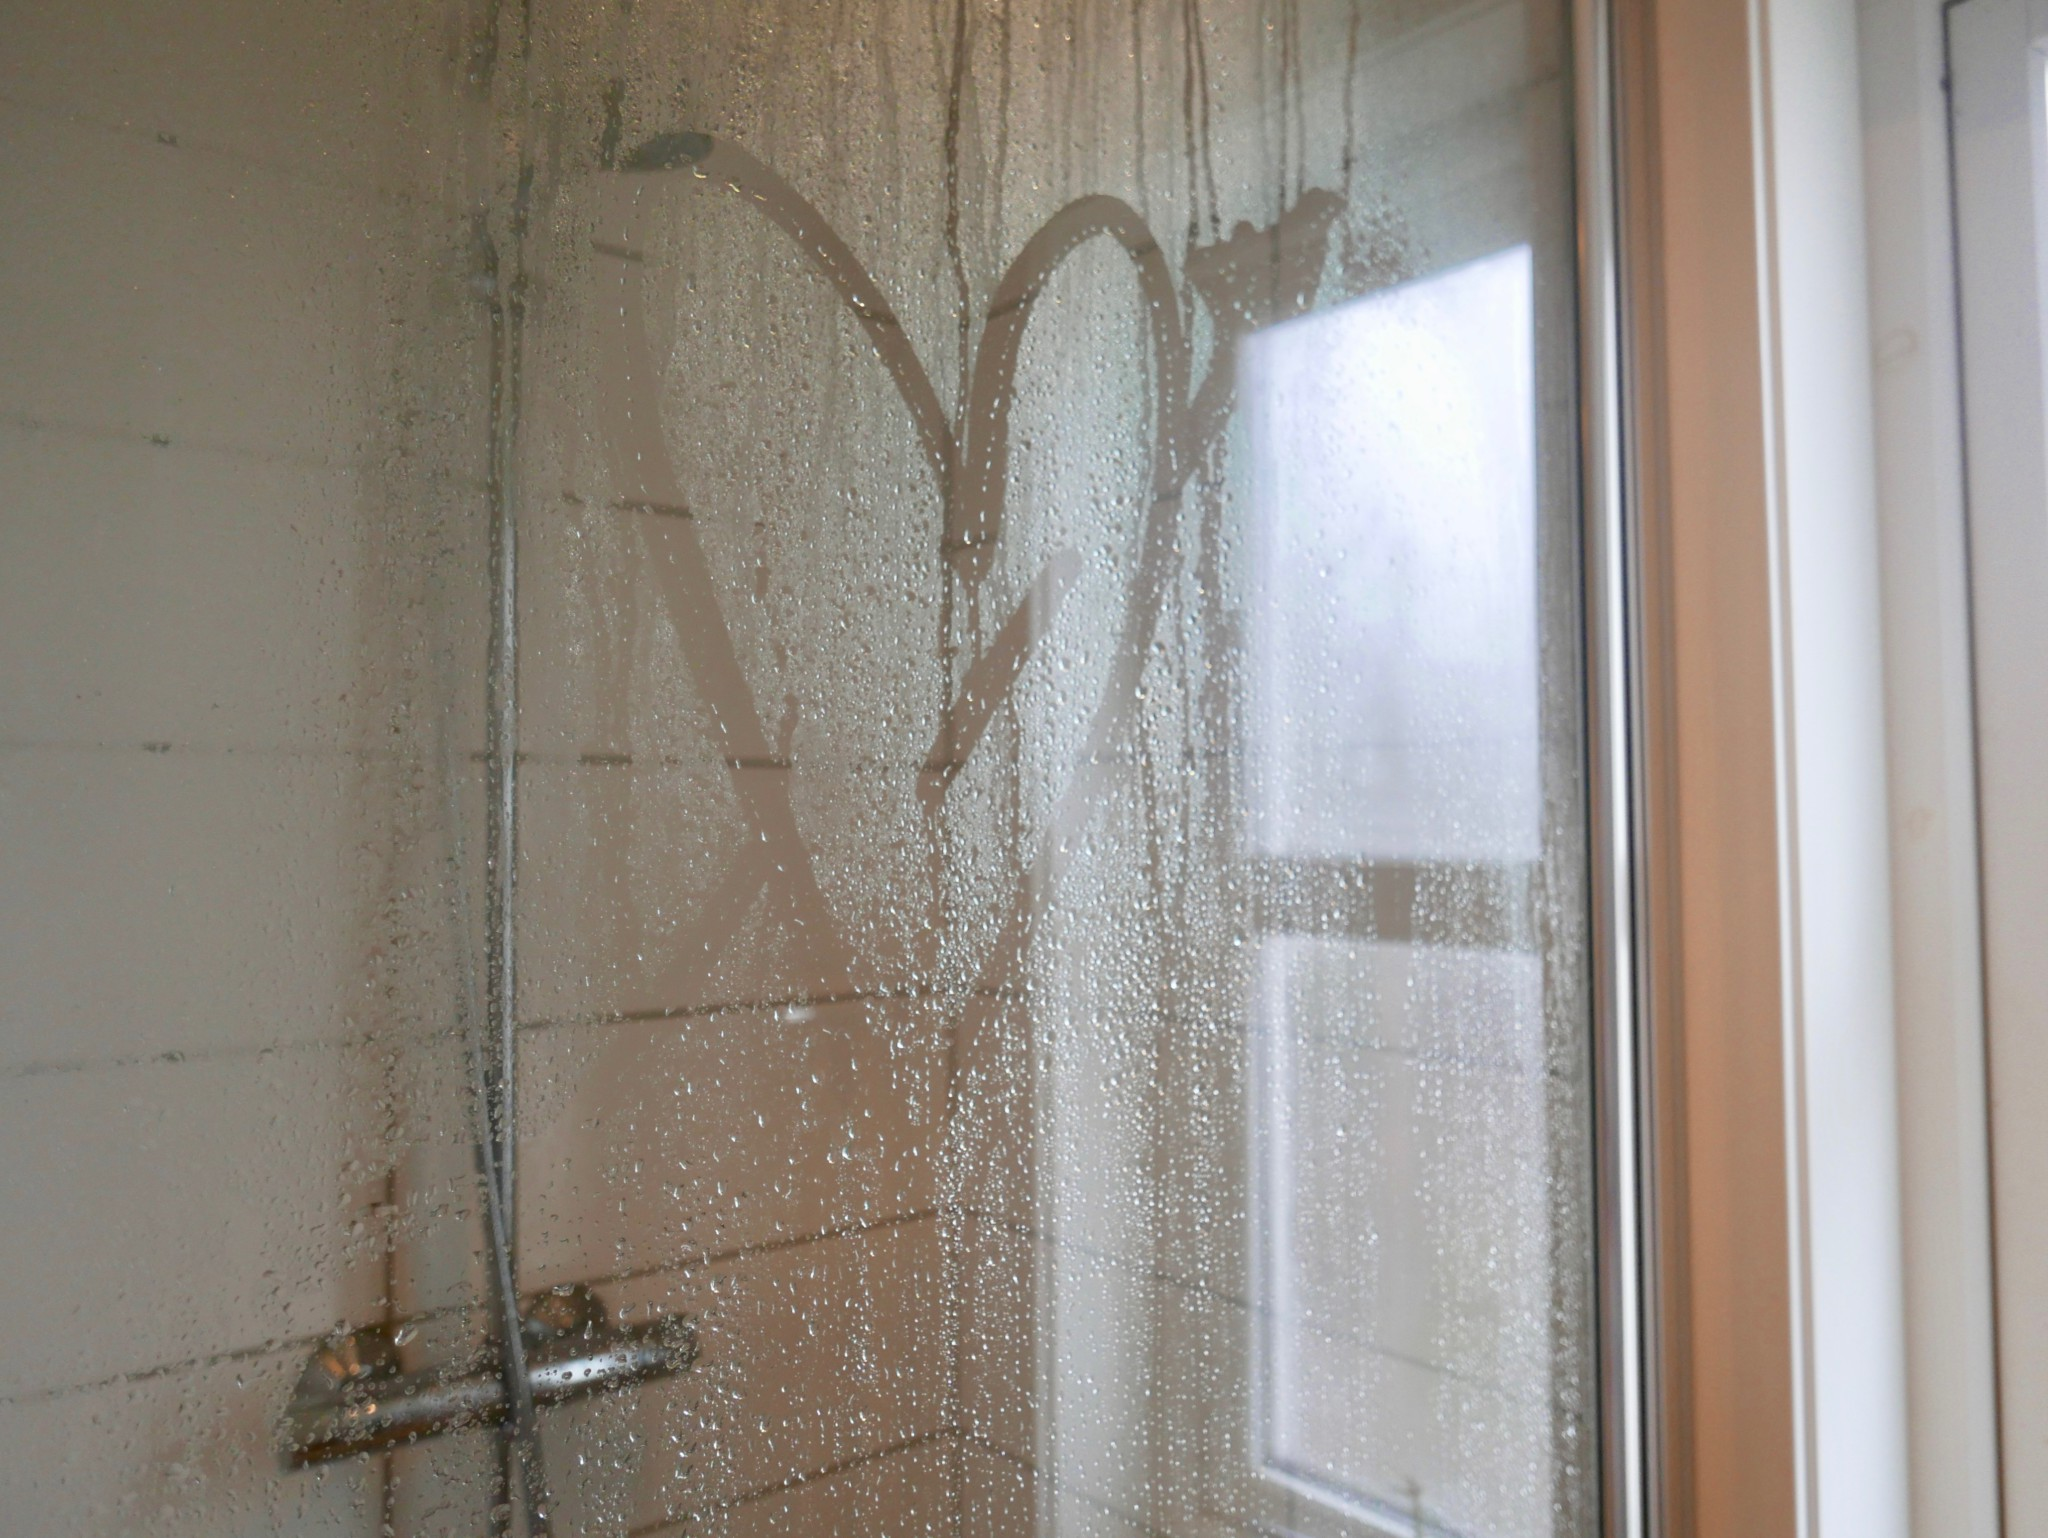 dusj-shower-vann-water-heart